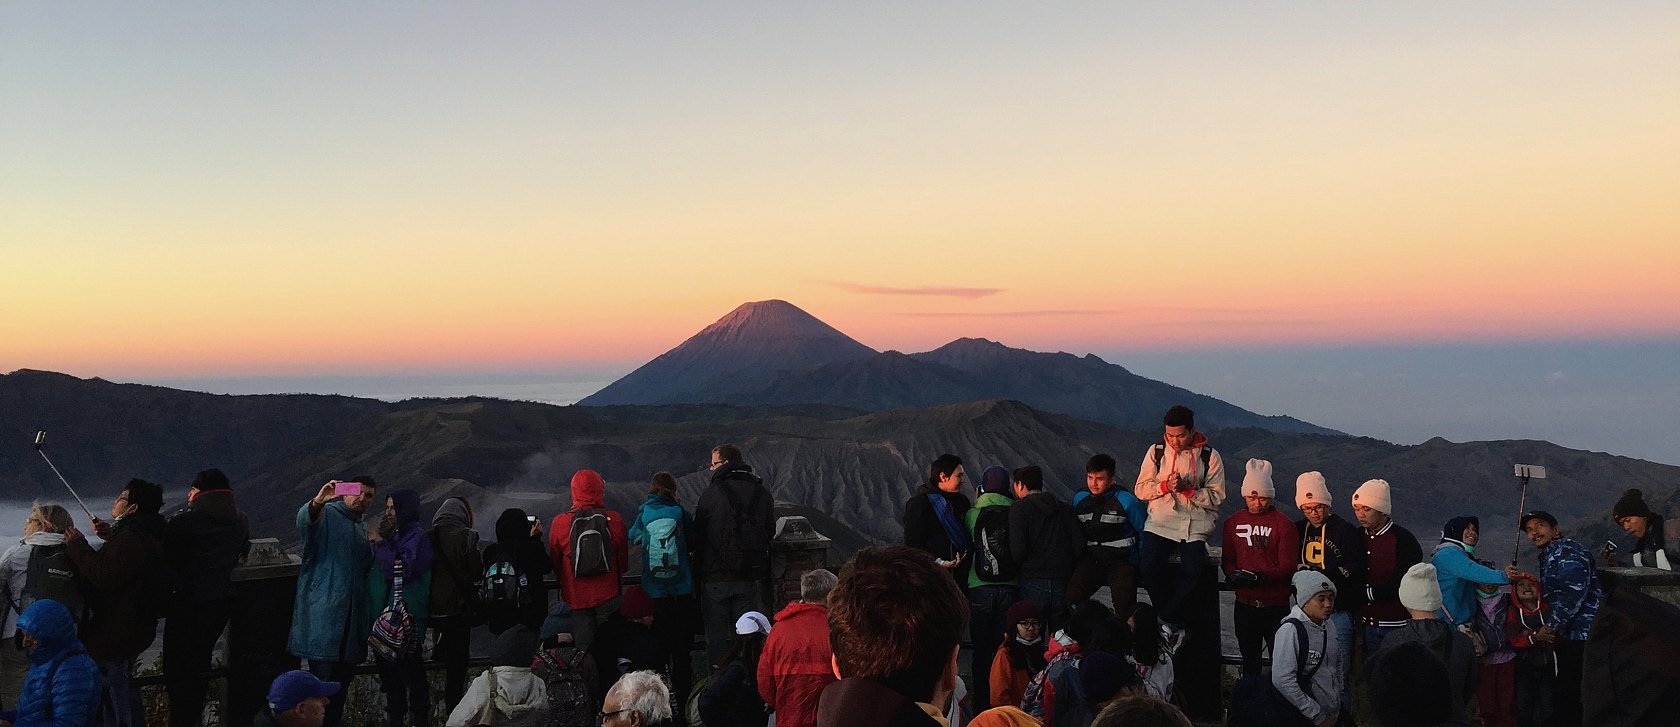 We also visited the Tengger Sand Sea and of course an active caldera. After that we explored the Savannah and the Madakaripura Waterfall. All within the Bromo Tengger Semeru National Park.